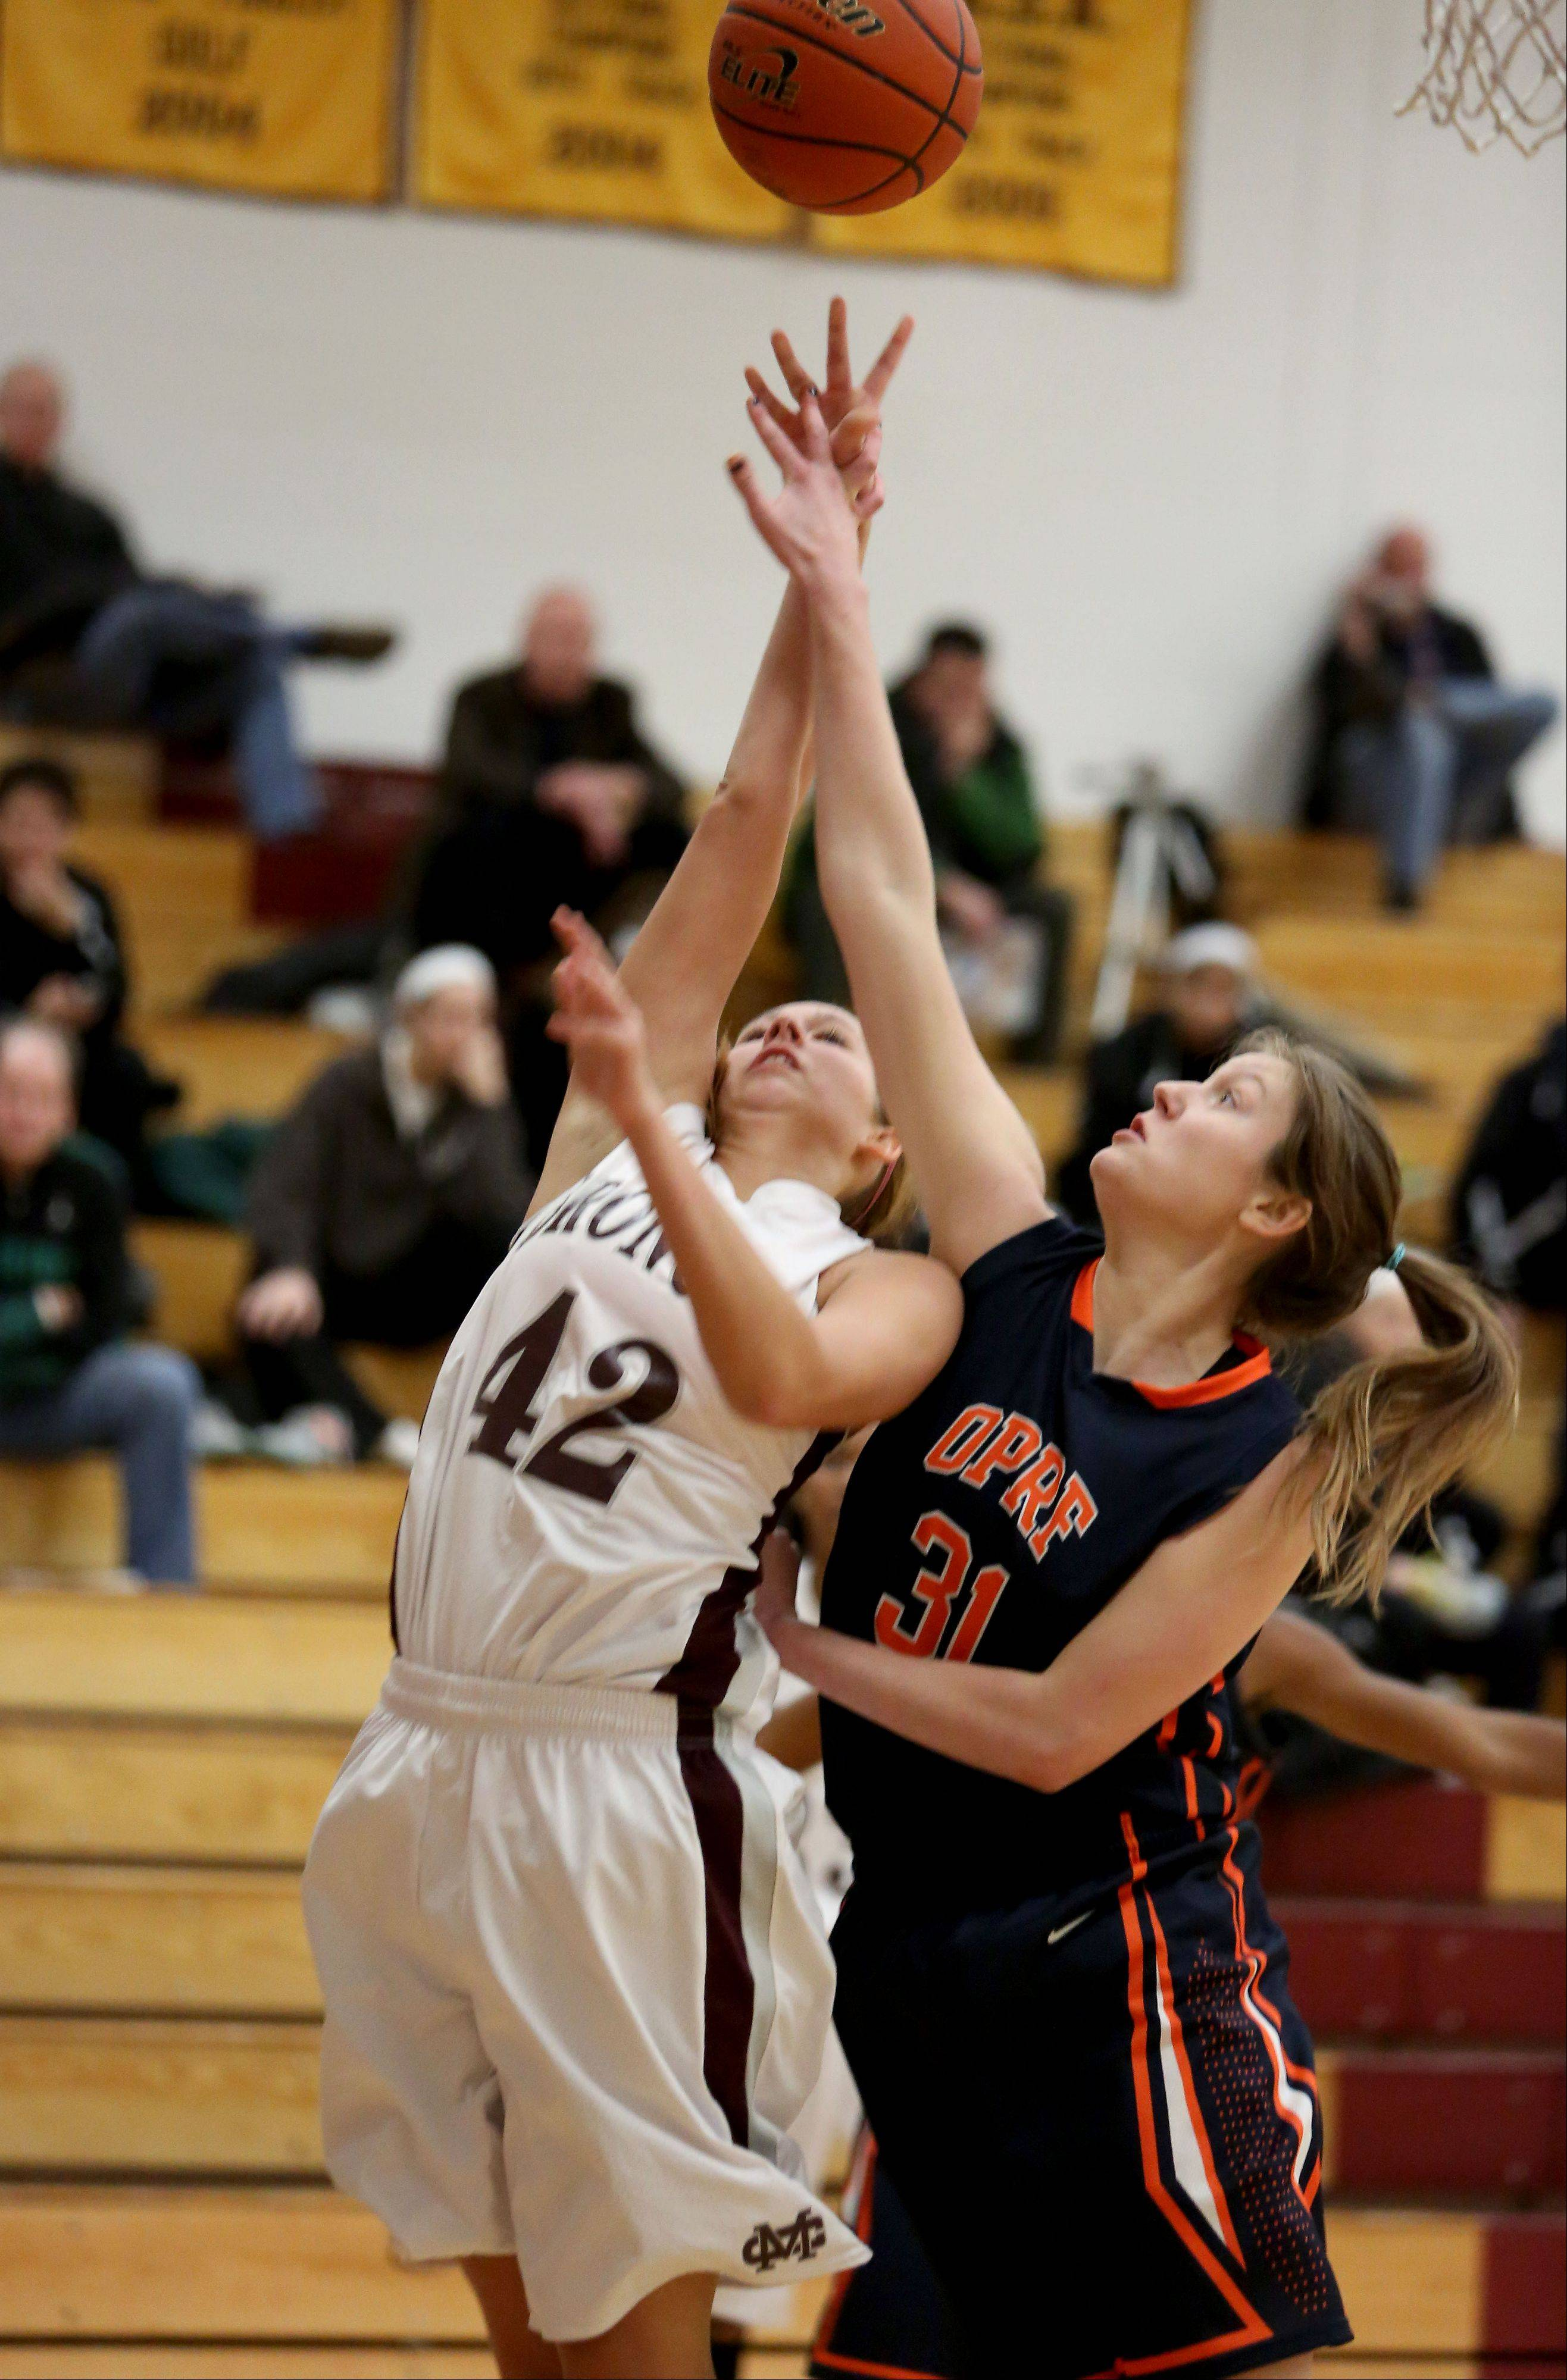 Calire Jakaitis, left of Montini and Gareth Coalson, right, of Oak Park River Forest, go for a rebound in the Montini Catholic High School Girls Basketball Christmas Tournament on Monday in Lombard.